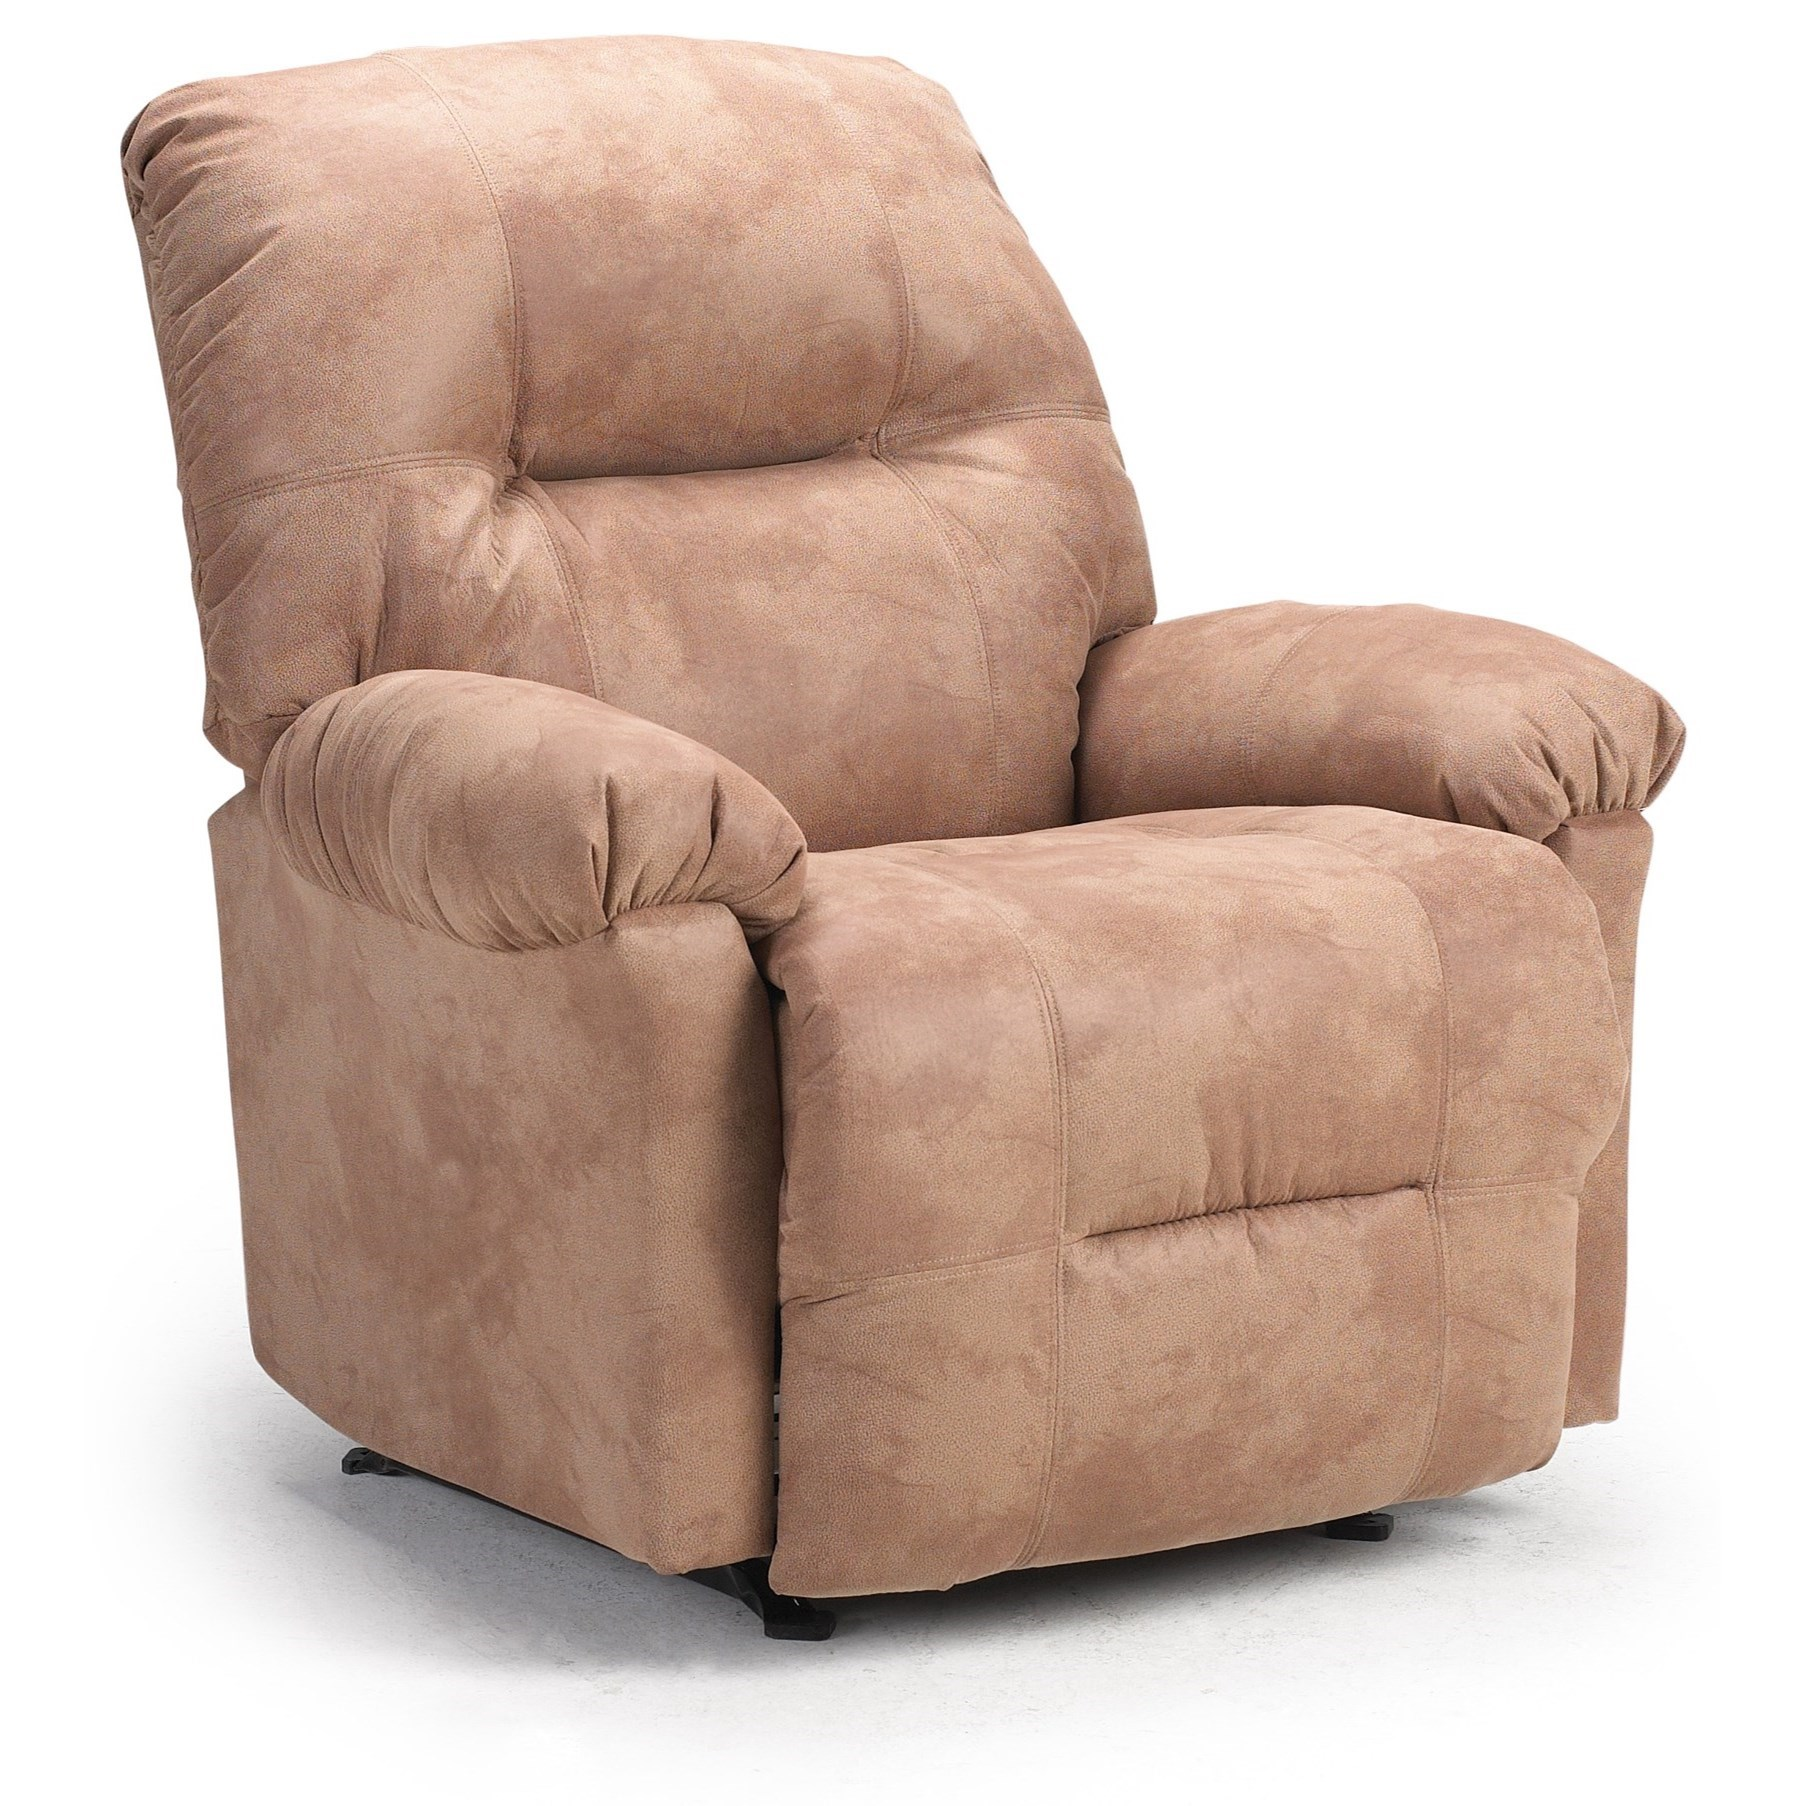 Petite Recliners Wynette Wallhugger Recliner by Best Home Furnishings at Baer's Furniture